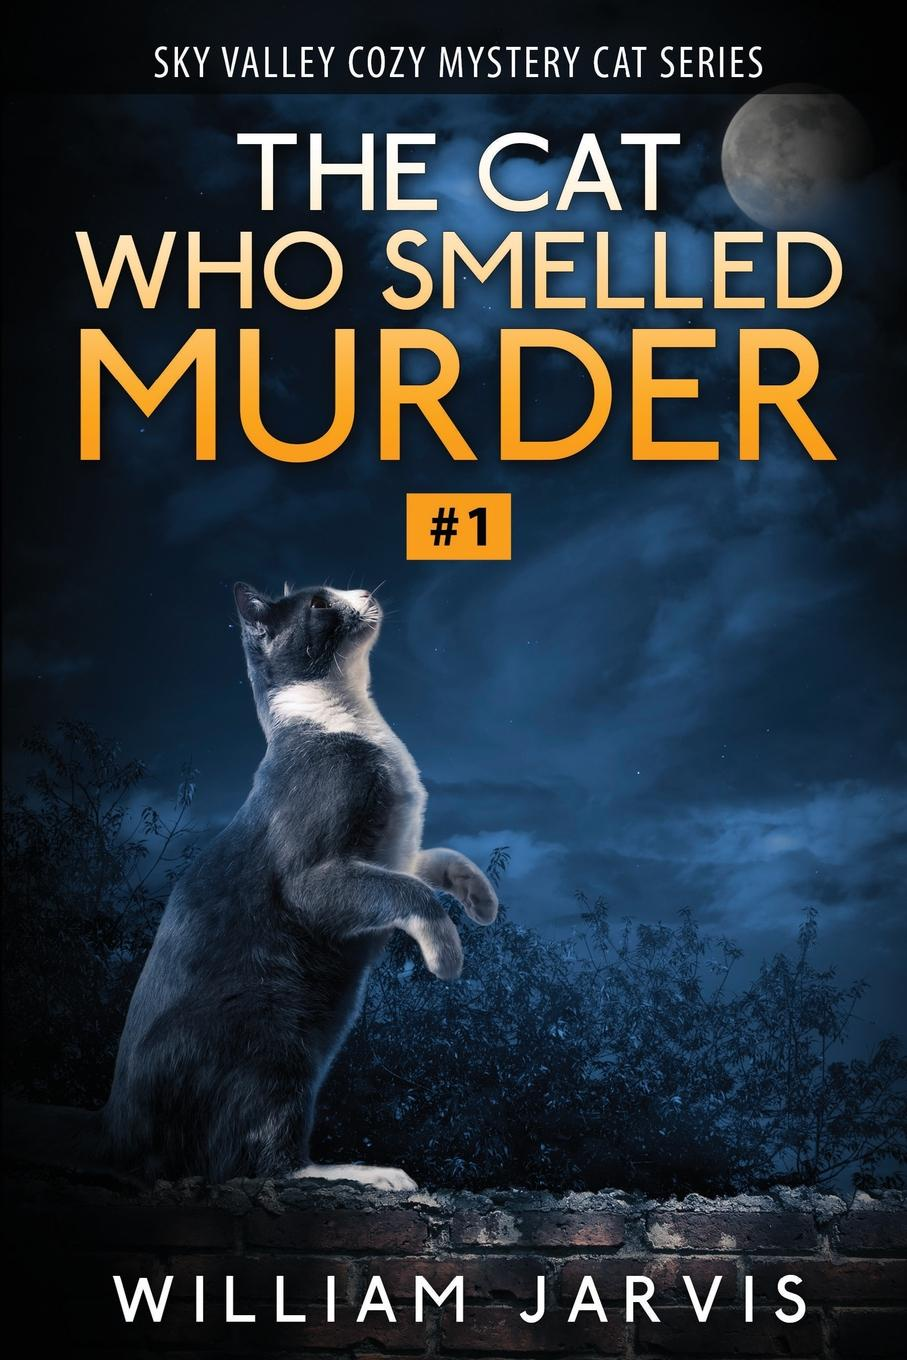 William Jarvis The Cat Who Smelled Murder. Sky Valley Cozy Mystery Cat Series Book 1 цена и фото